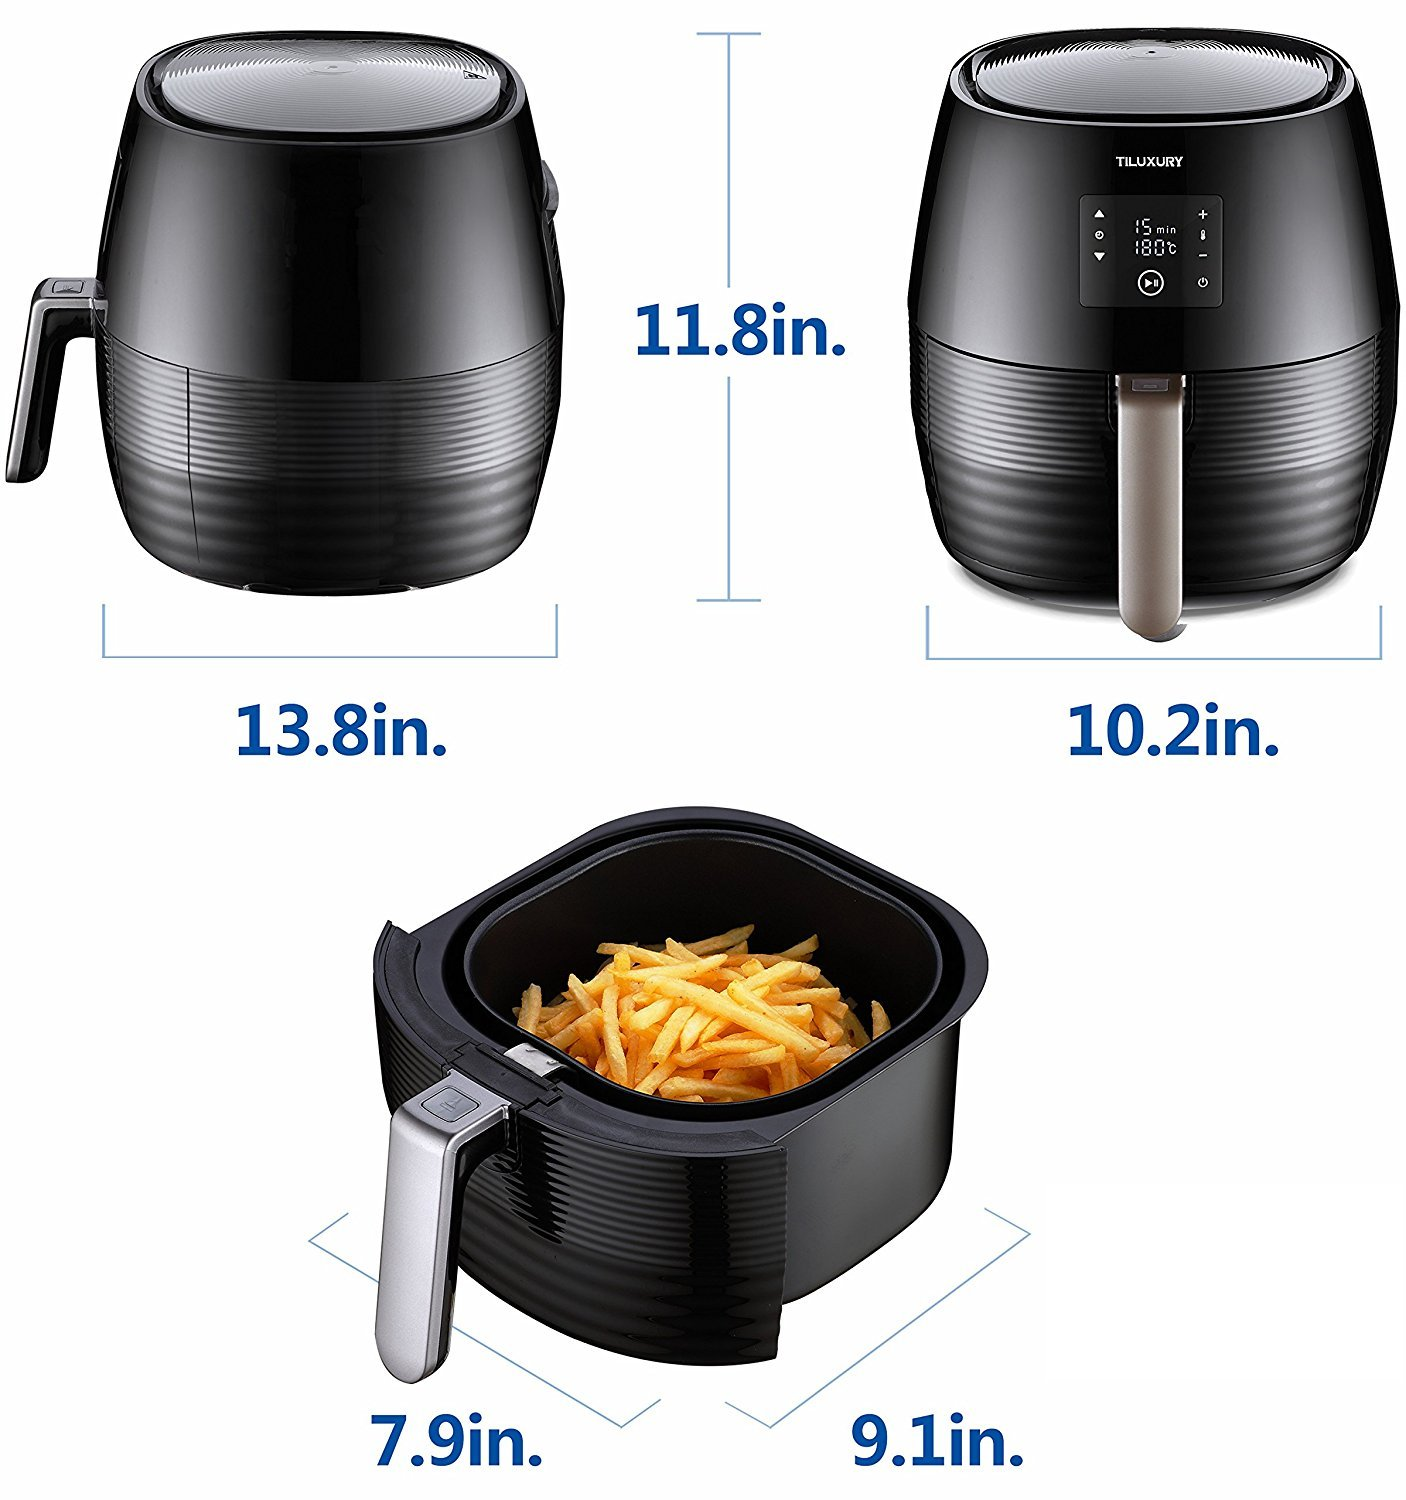 Tiluxury Air Fryer,Electric Air Fryers, Healthy Food Less Fat,Air French Fries,Hot Air Frying Technology Cooker,Digital Touch Screen and Non-Stick Basket,1400W 3.7QT (Black) by Tiluxury (Image #3)